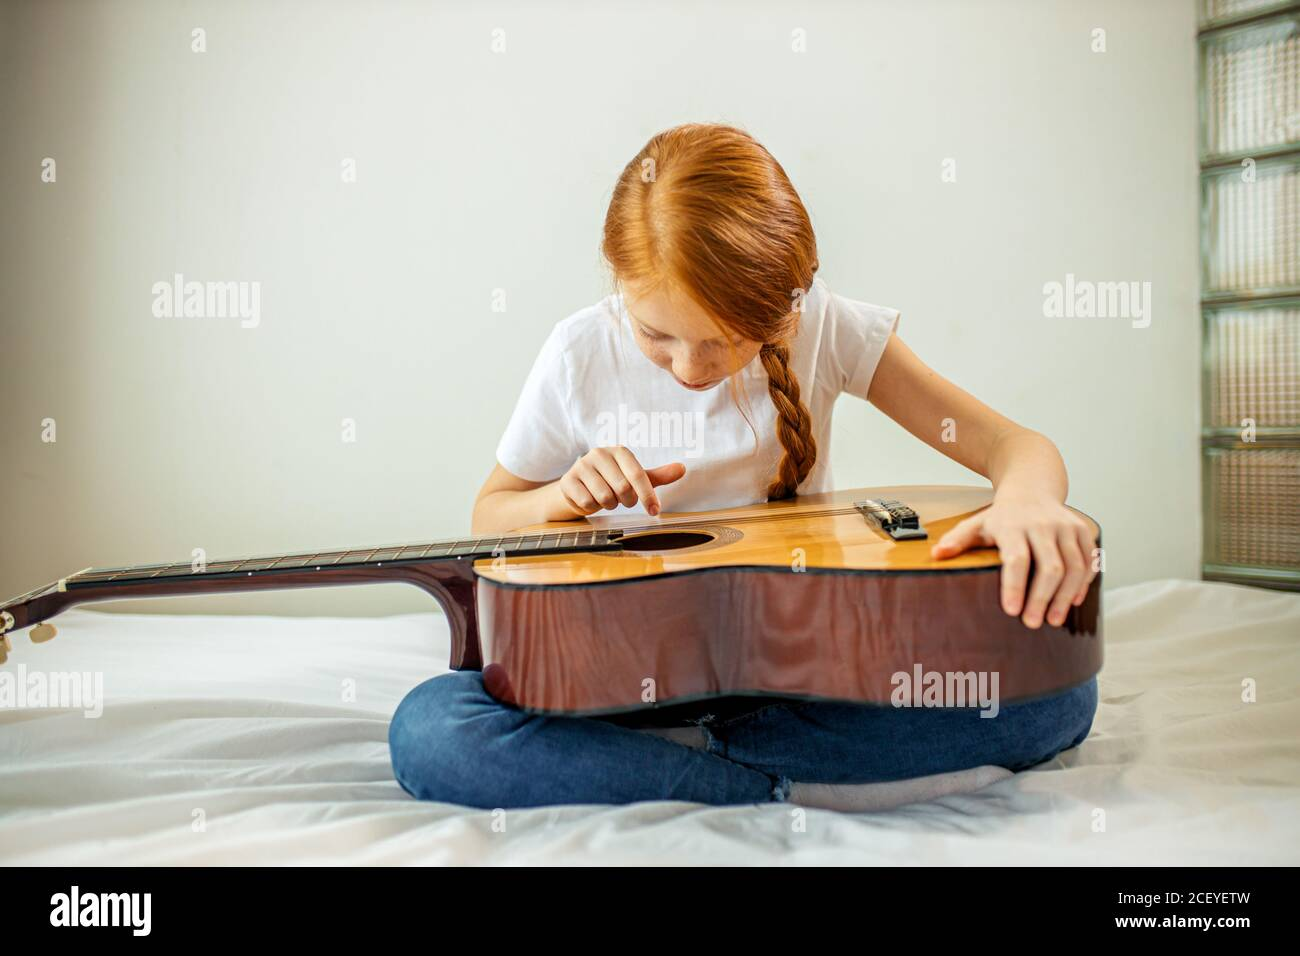 cute adorable child blogger play guitar, talk at camera how she learned playing acoustic guitar, she is self-taught Stock Photo